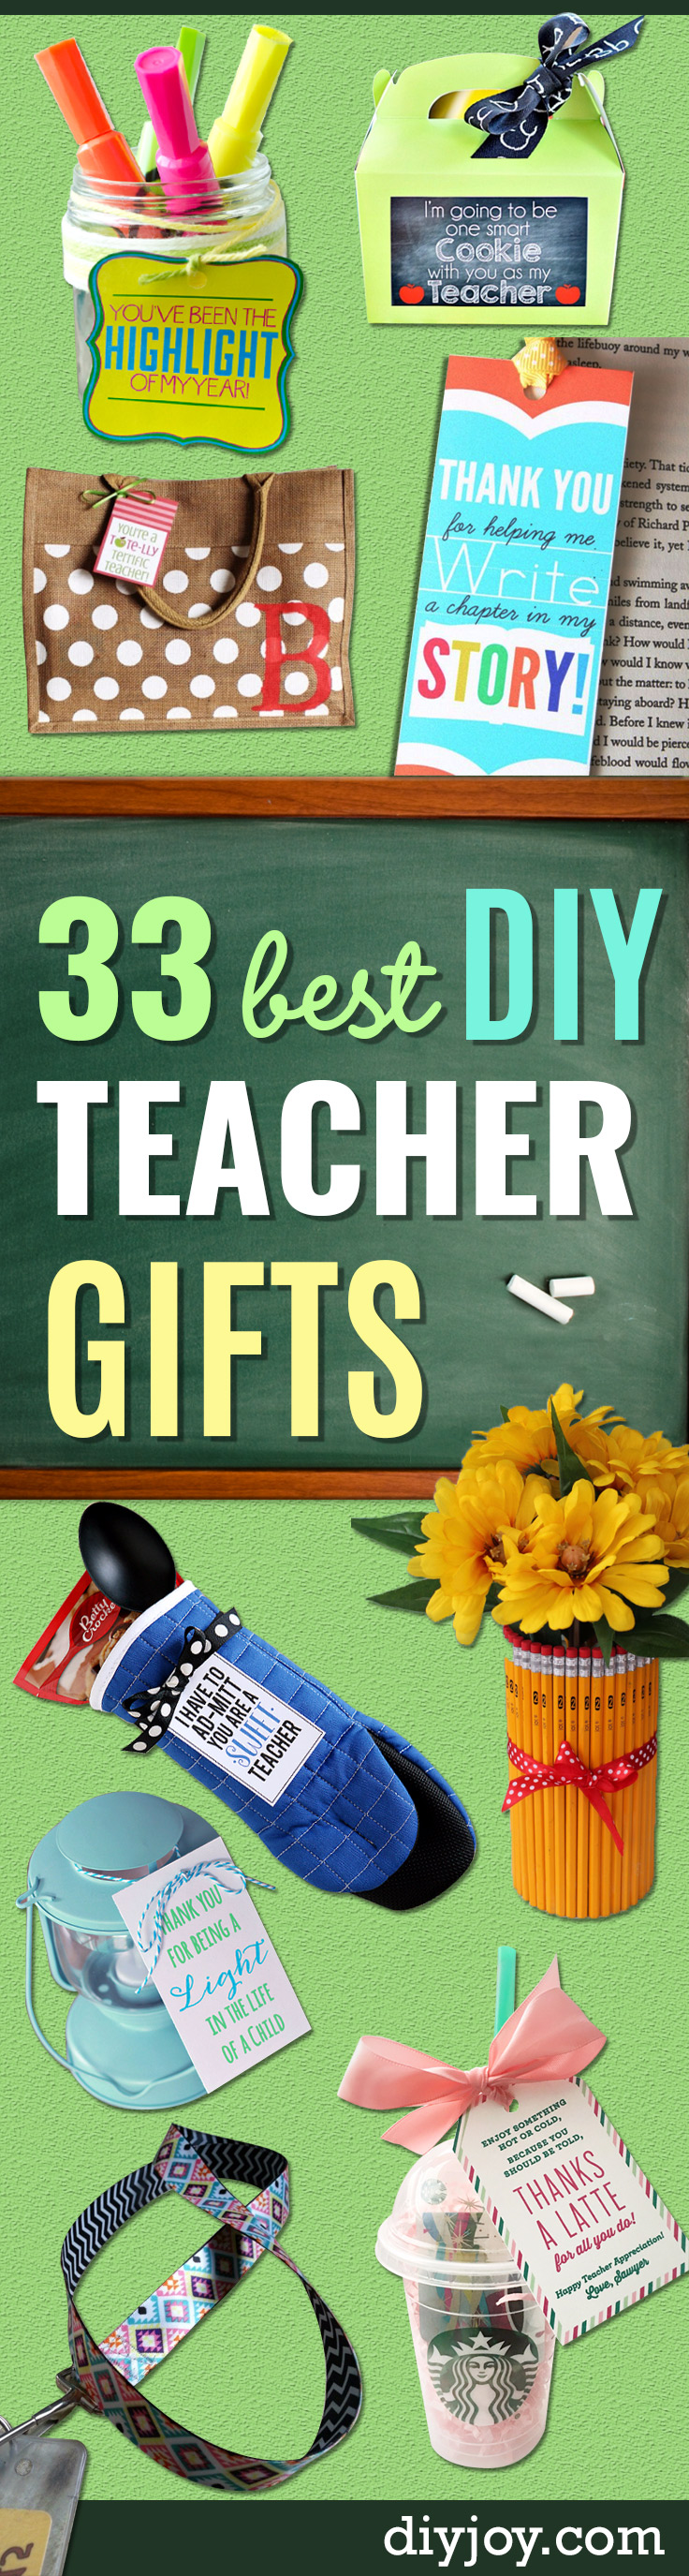 DIY Teacher Gifts - Cheap and Easy Presents and DIY Gift Ideas for Teachers at Christmas  sc 1 st  DIY Joy & 33 Best DIY Teacher Gifts